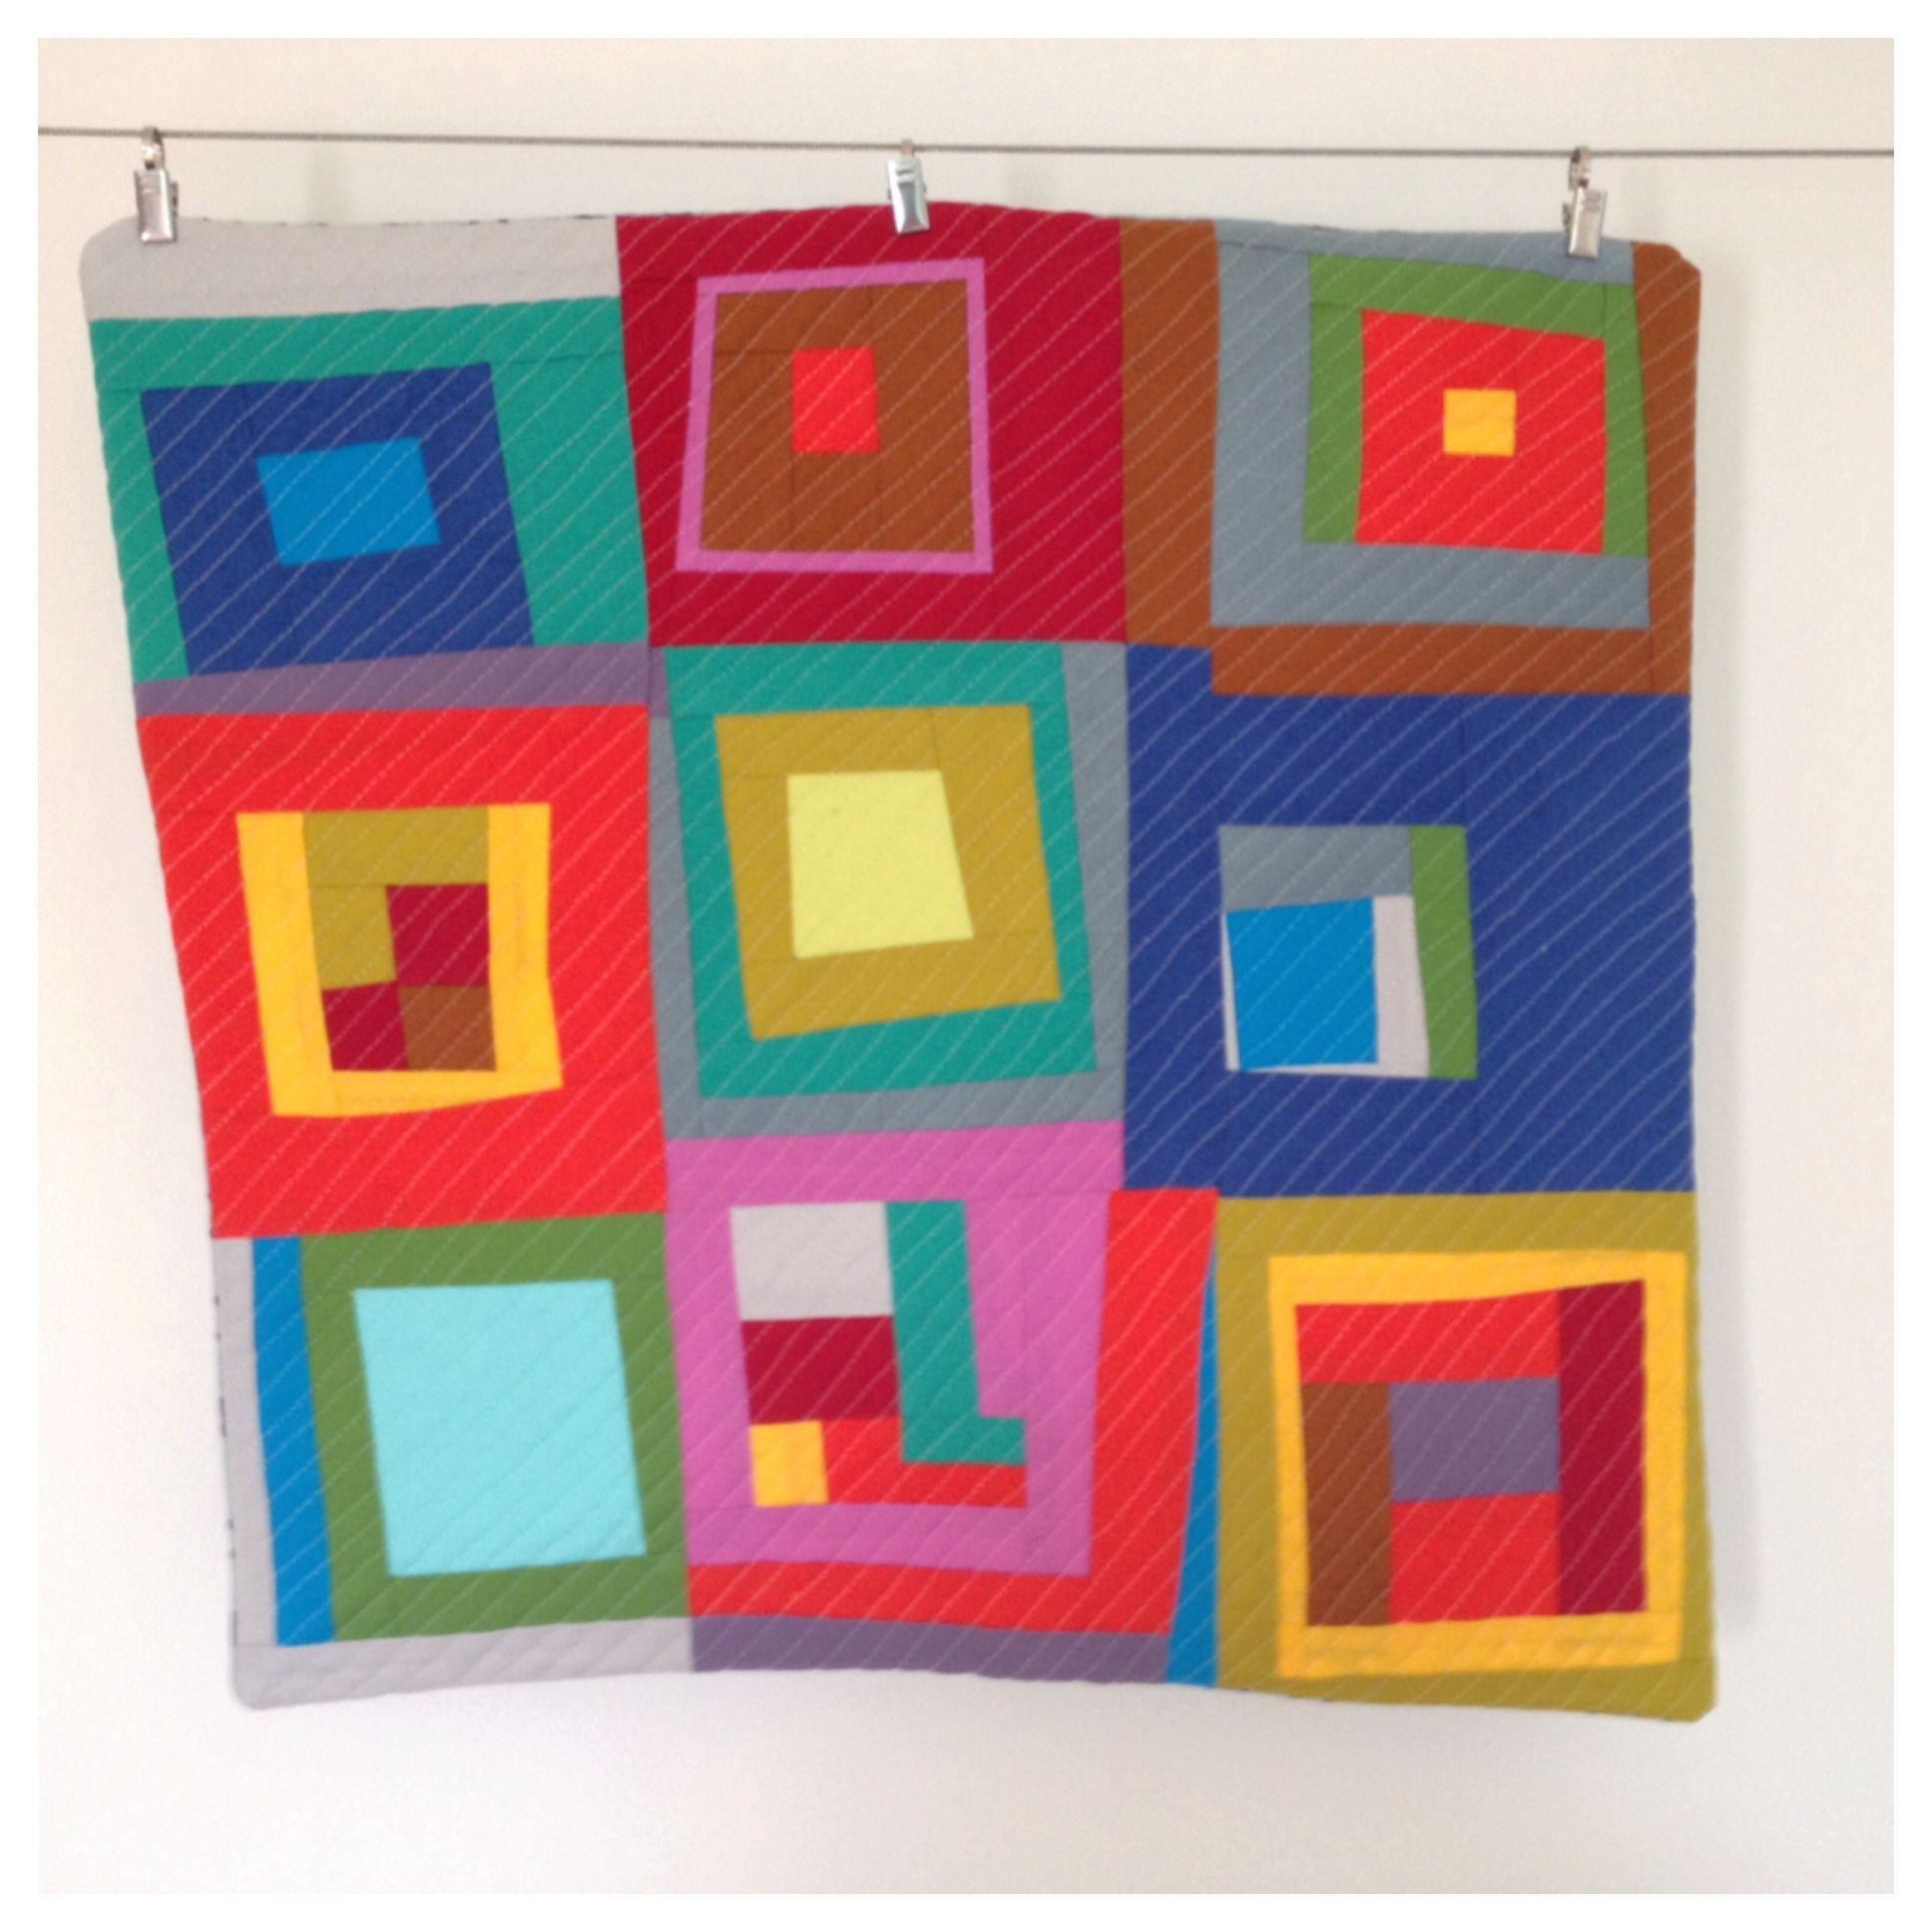 Improv block quilted and backed to make pillow cover.